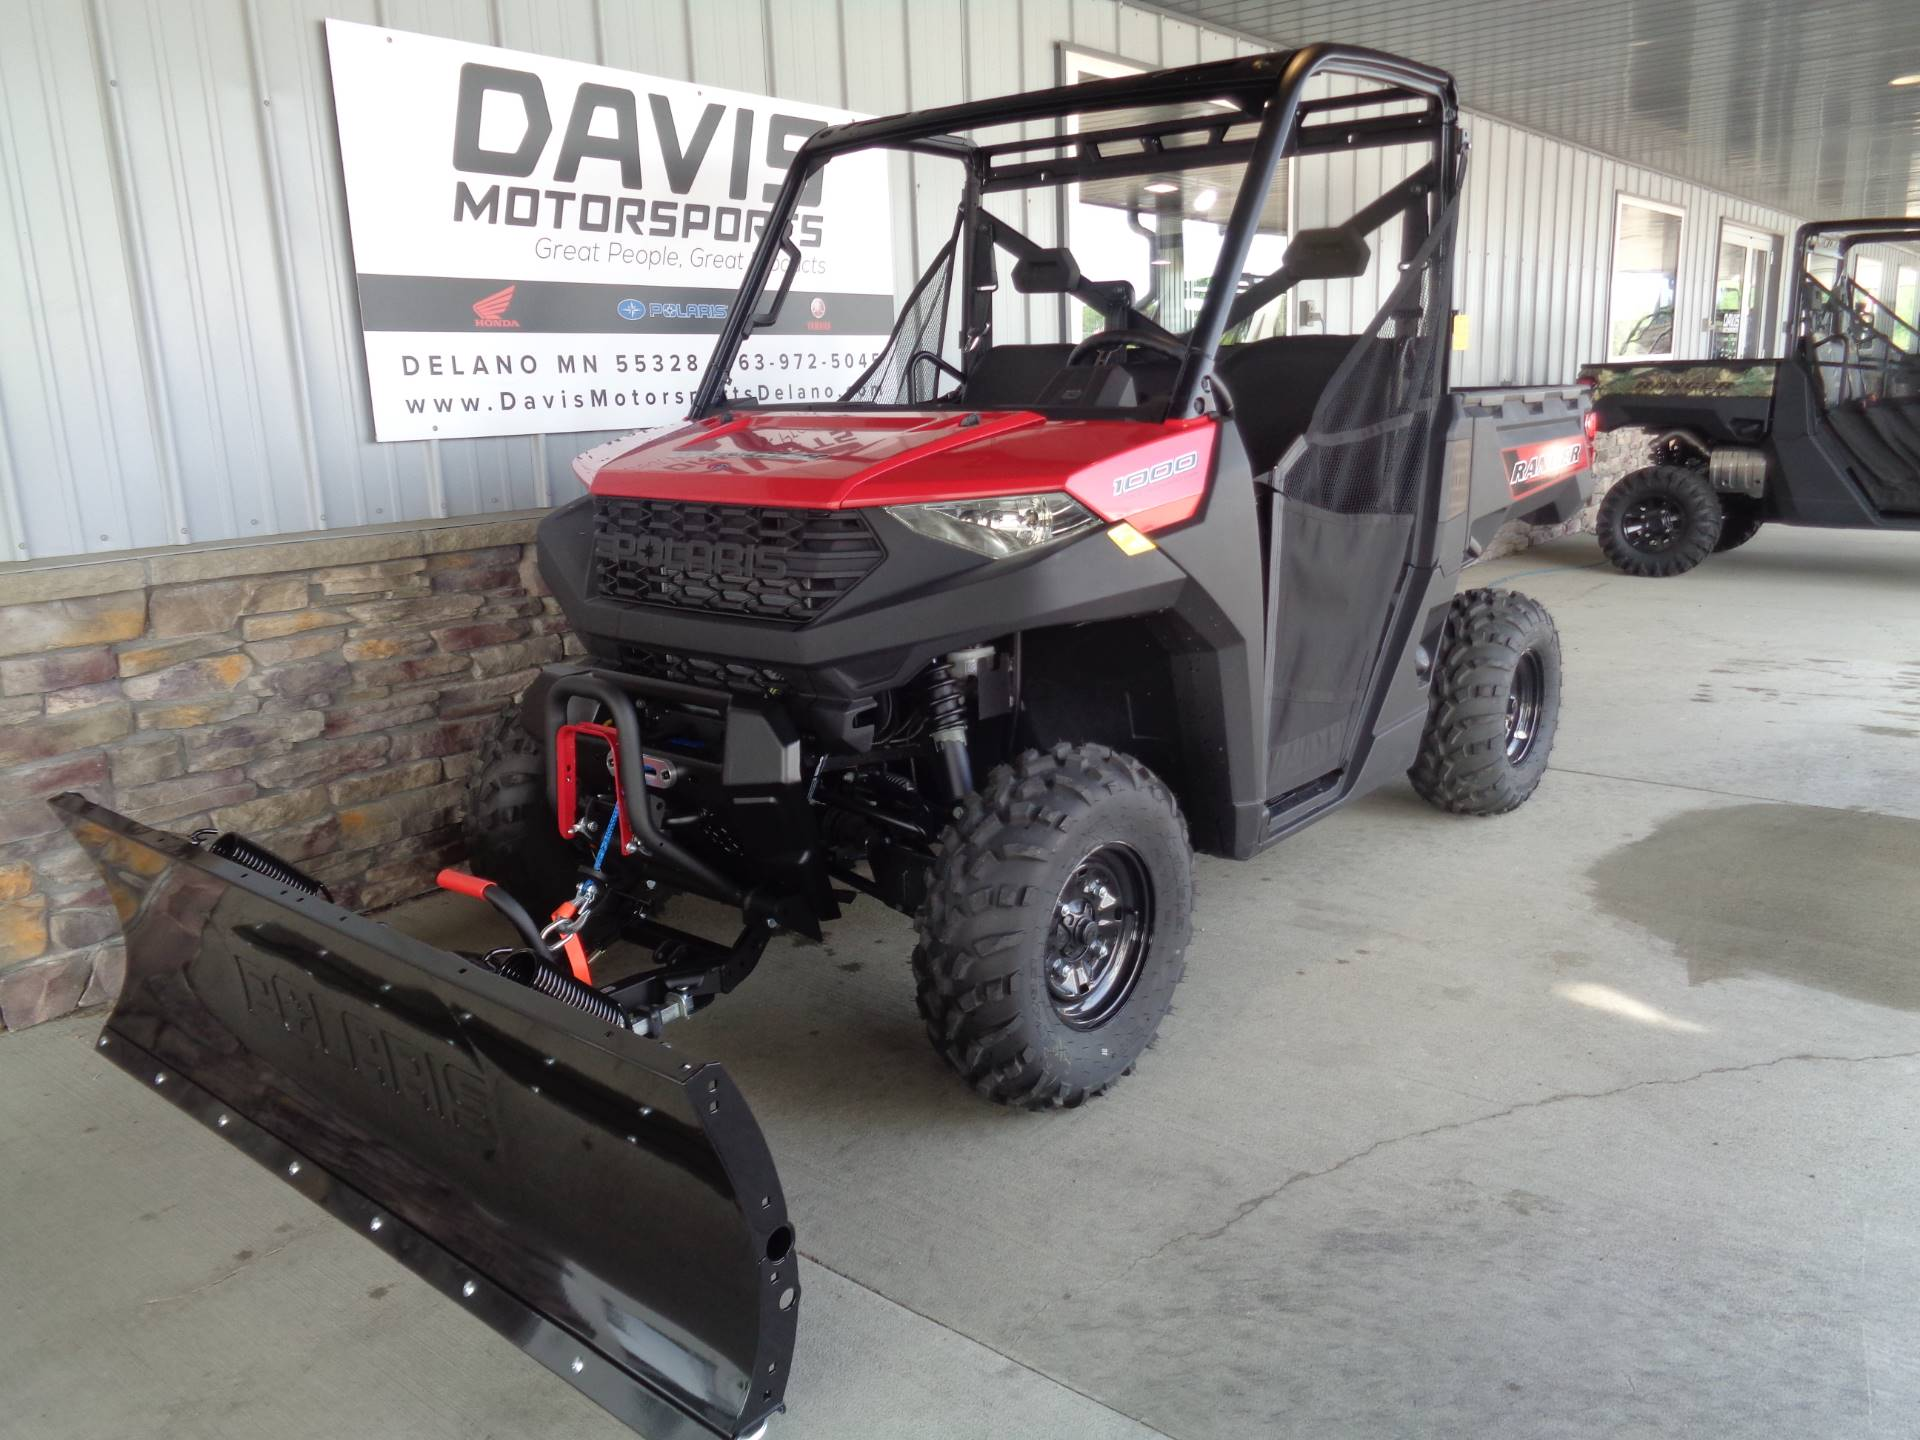 2020 Polaris Ranger 1000 EPS in Delano, Minnesota - Photo 4